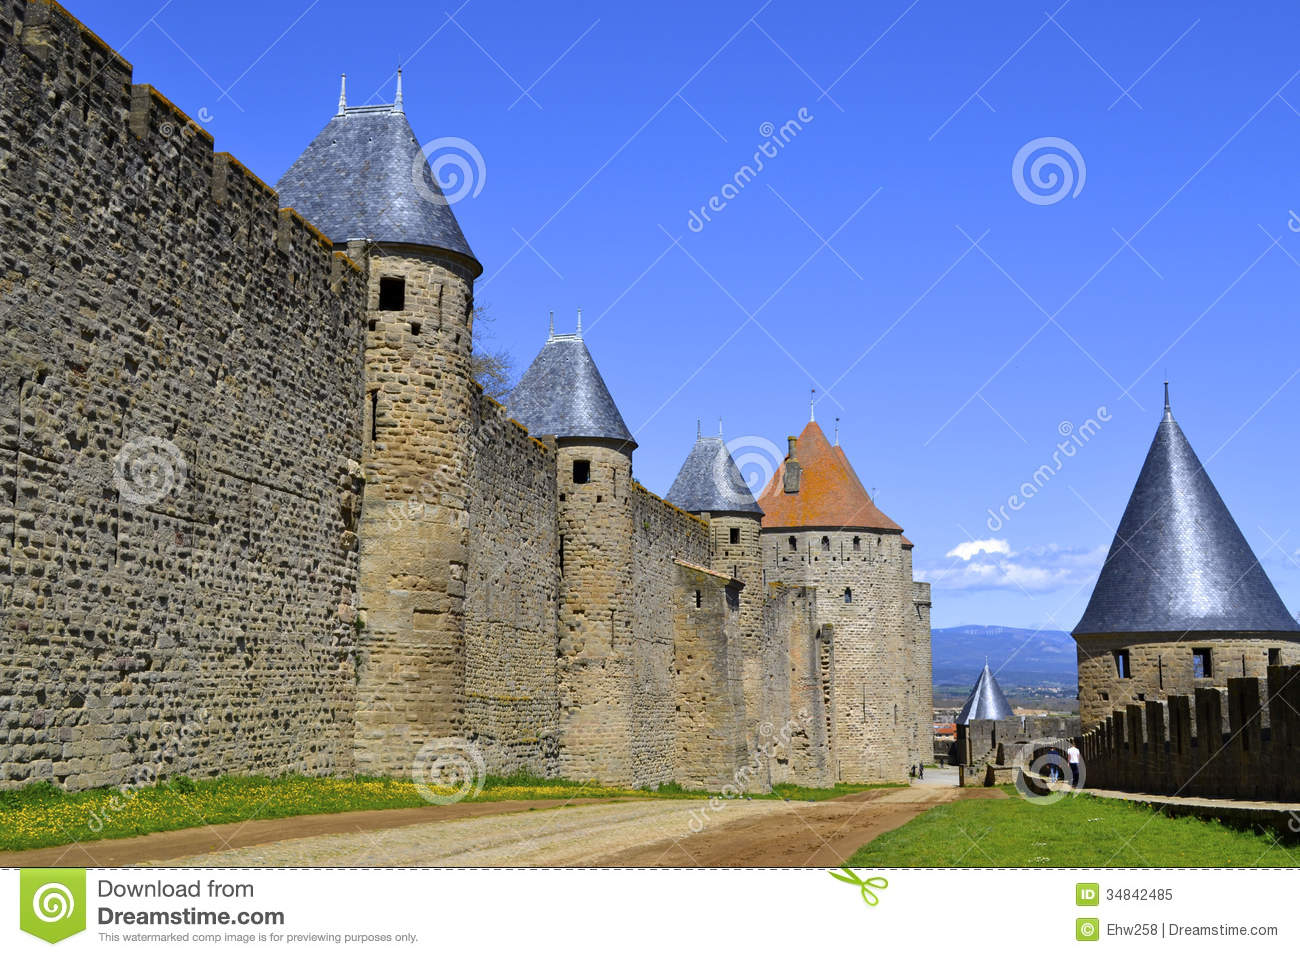 old french castle royalty free stock photo   image 34842485